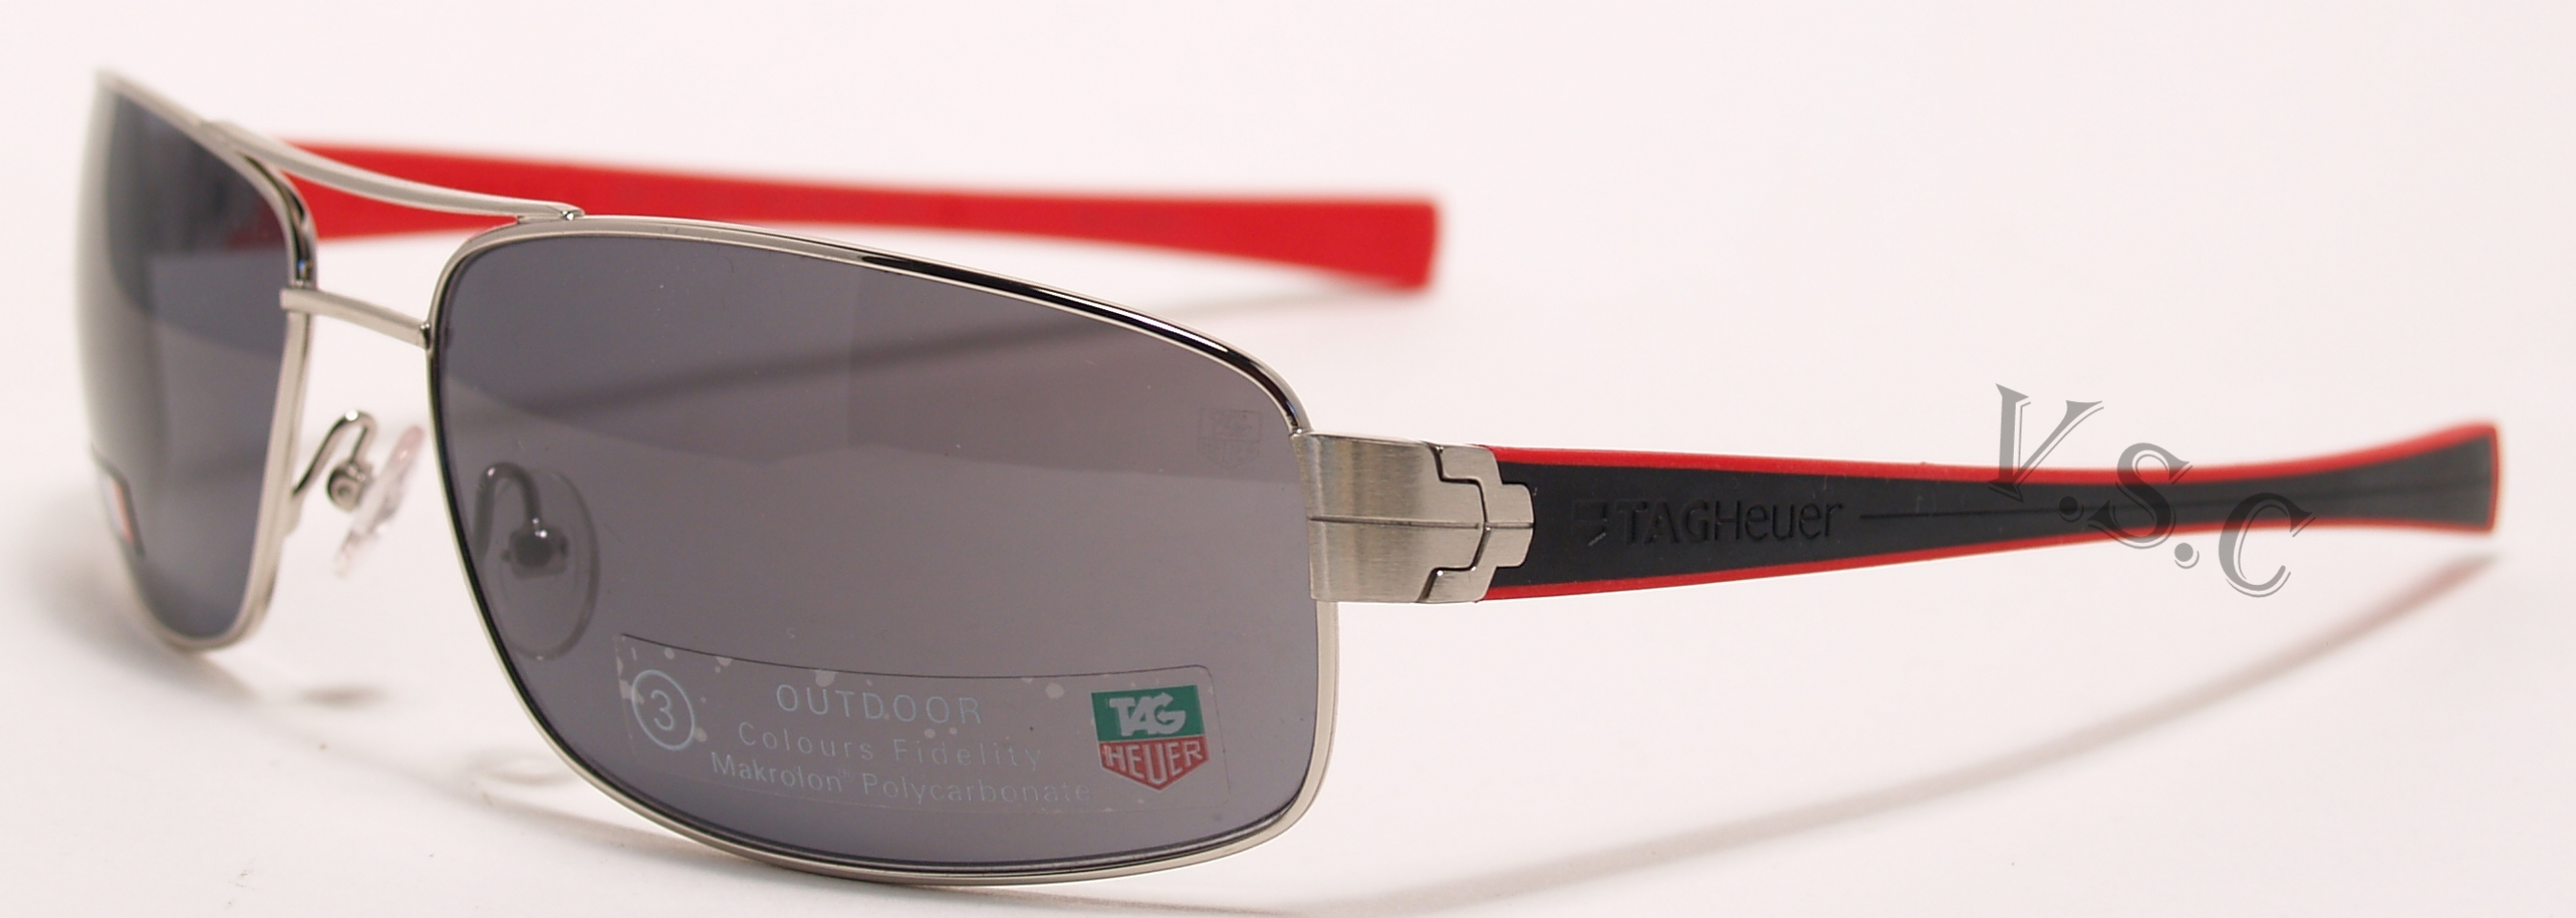 445db3090ff0 Buy Tag Heuer Sunglasses directly from OpticsFast.com